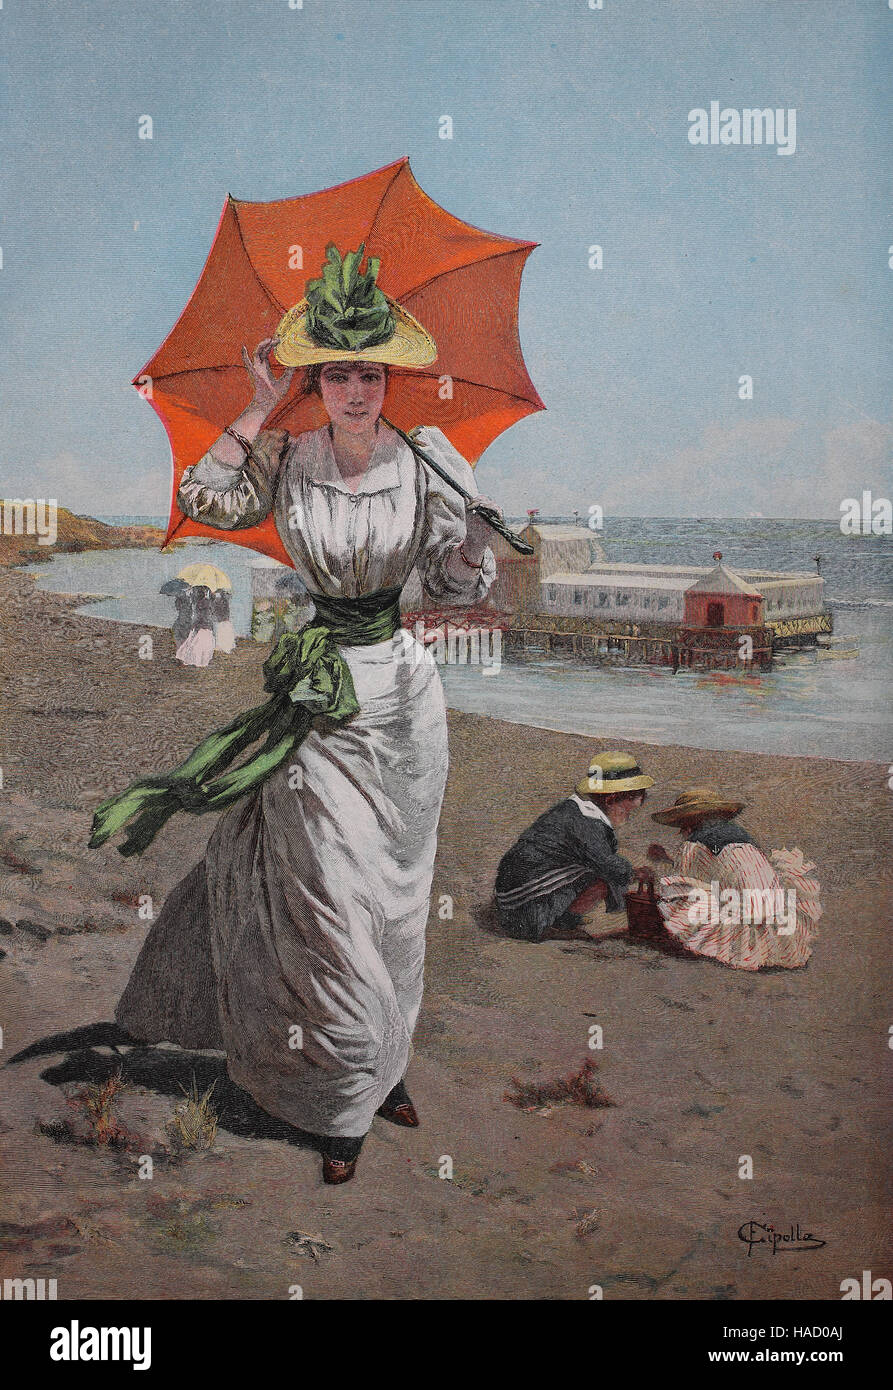 Elegant woman on the beach of the Baltic Sea, Germany, with umbrella, illustration published in 1880 - Stock Image